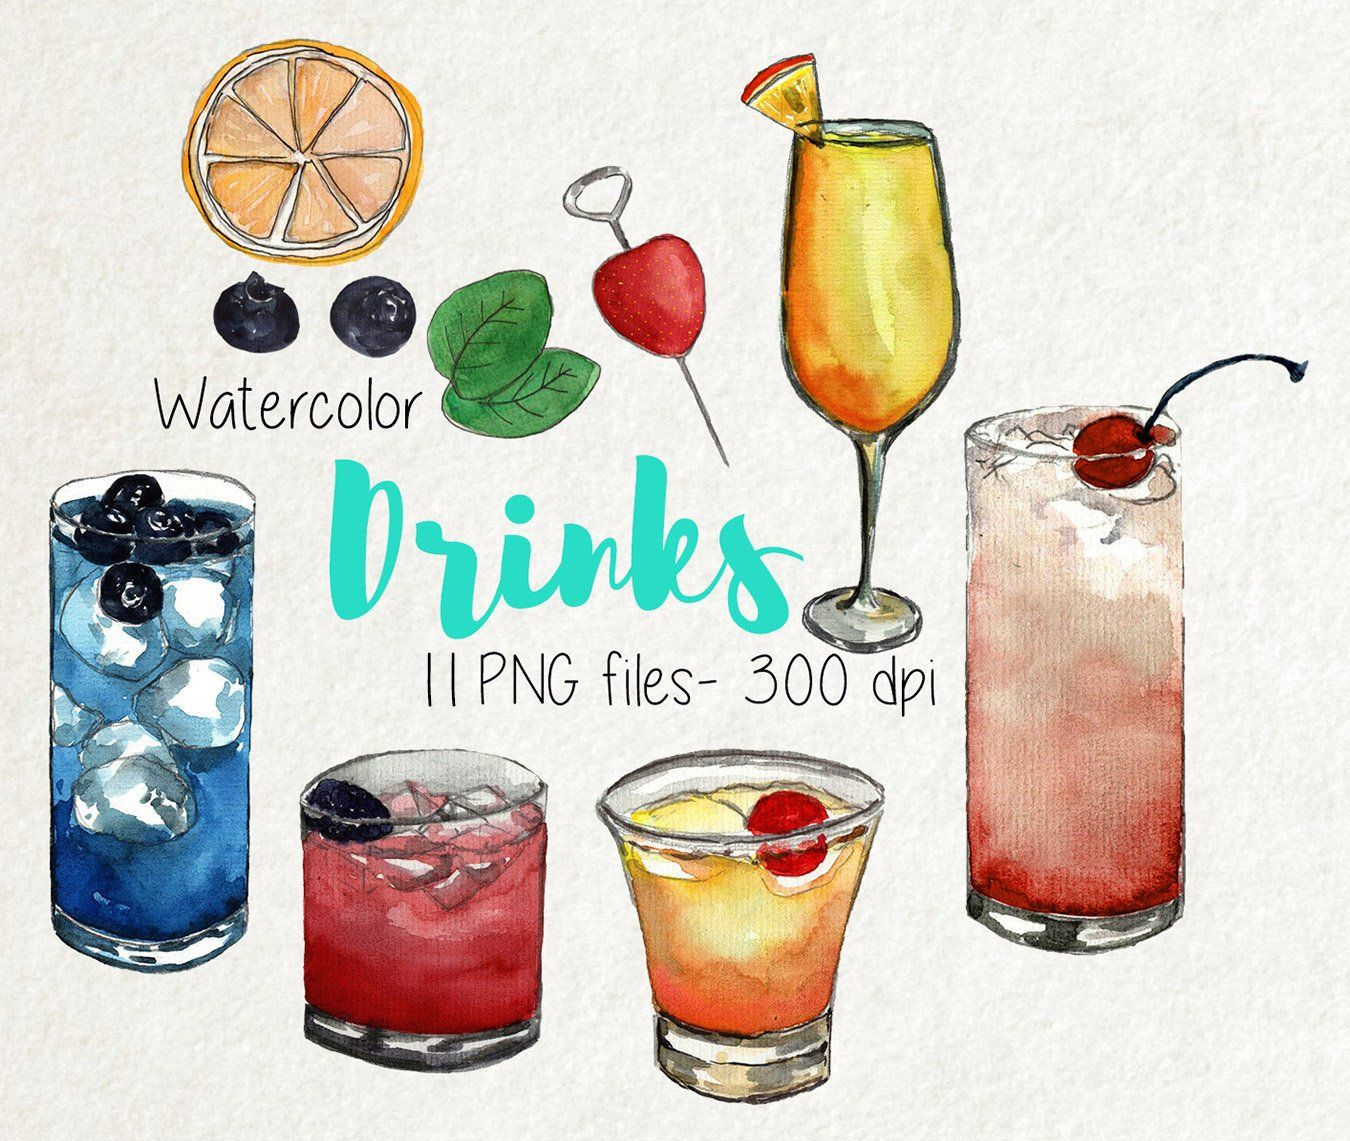 Watercolor drinks clipart clip royalty free library Watercolor Drinks clipart set, drinks watercolor, watercolor ... clip royalty free library